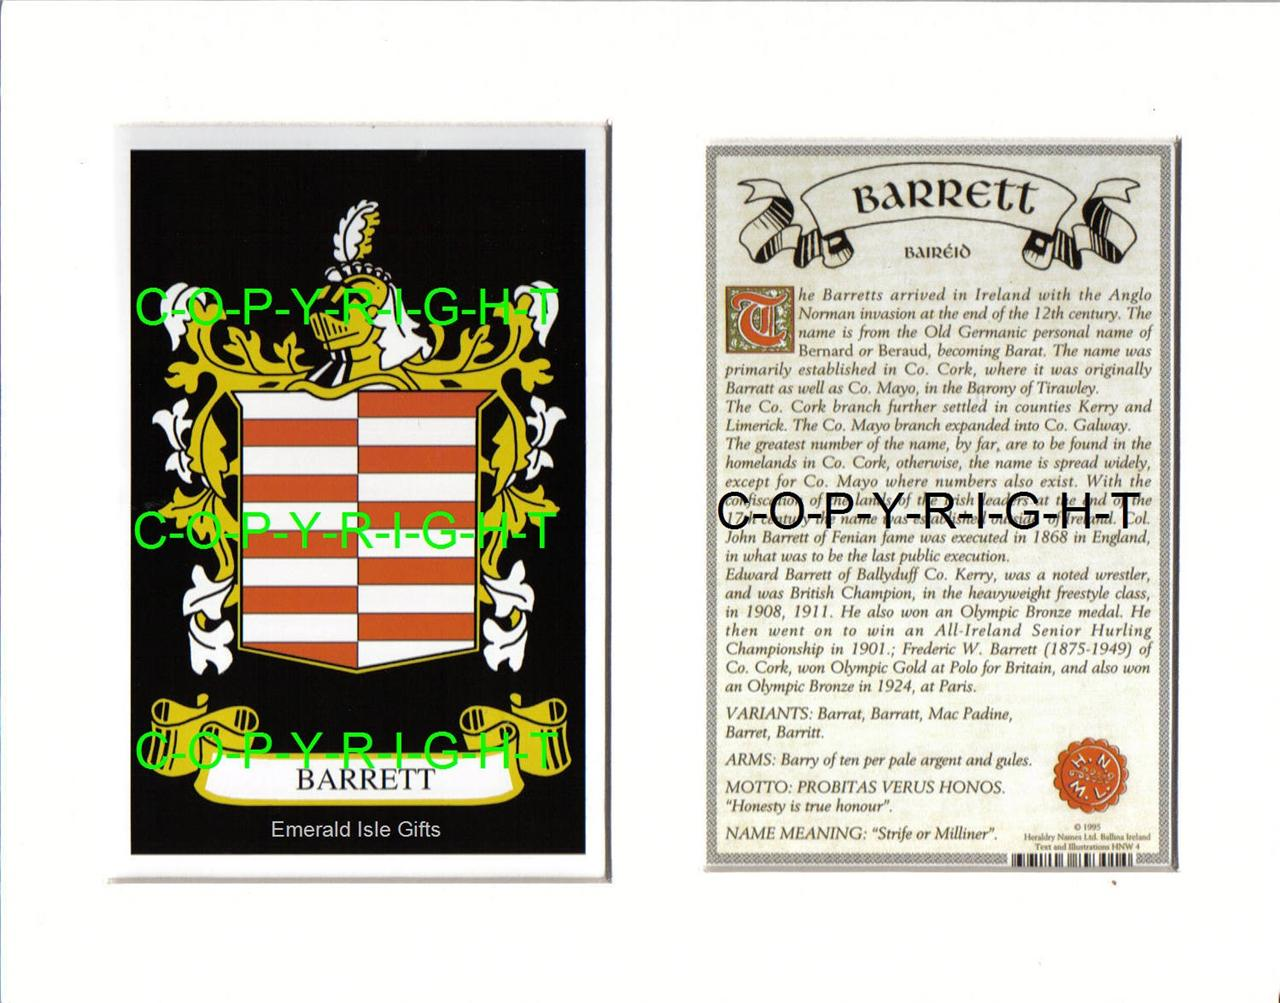 BARRETT-Family-Coat-of-Arms-Crest-History-Available-Mounted-or-Framed